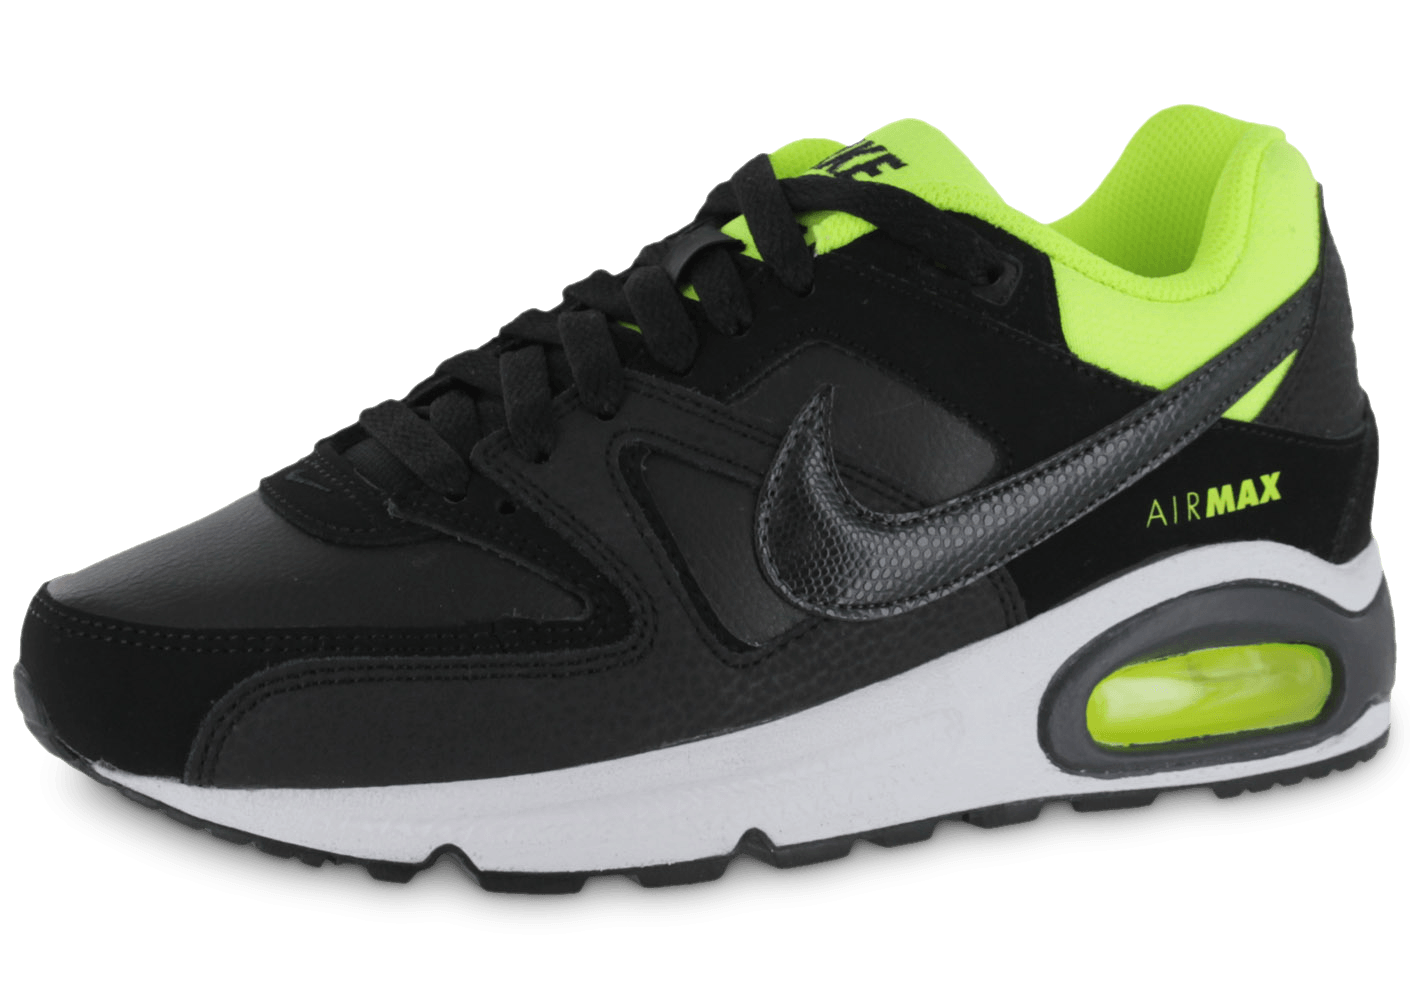 nike air max command junior noire chaussures chaussures chausport. Black Bedroom Furniture Sets. Home Design Ideas